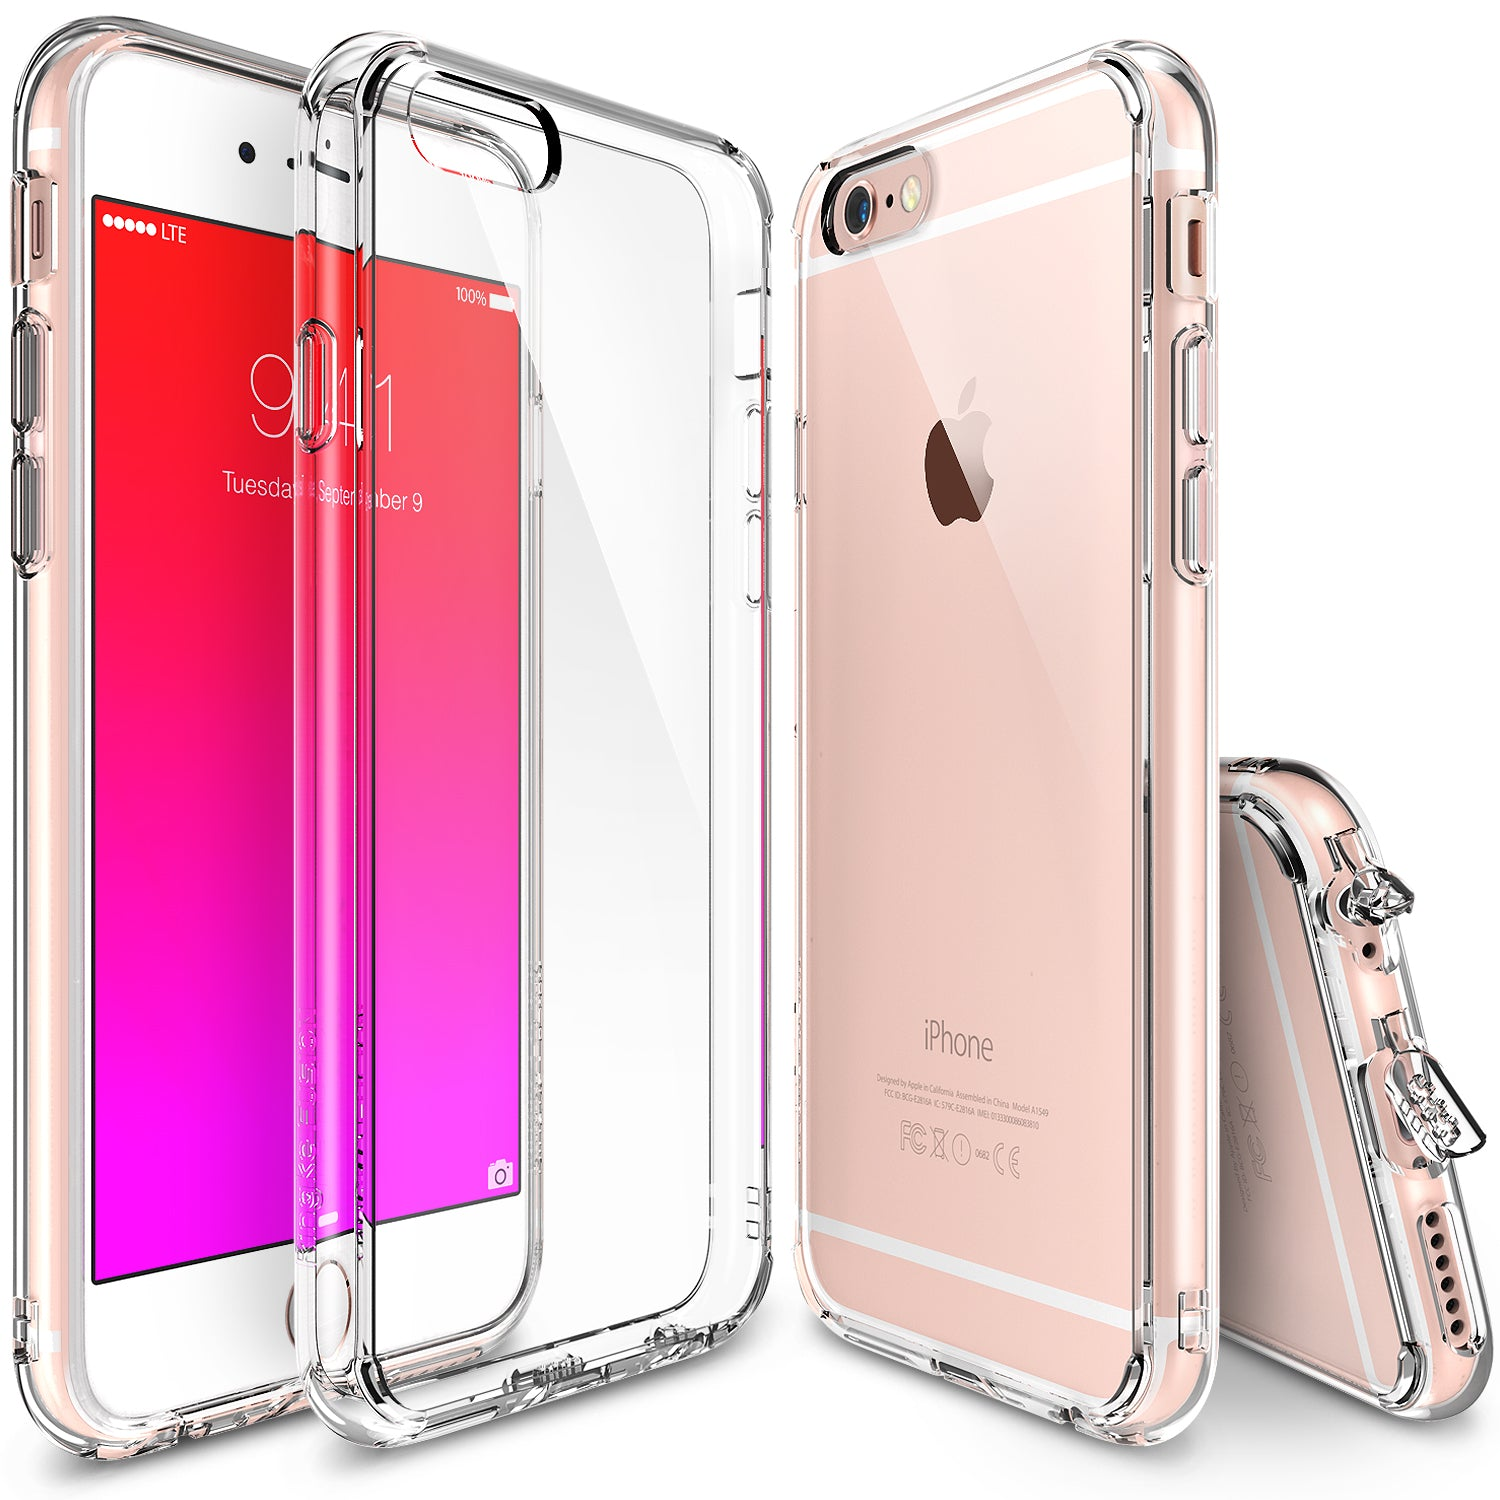 ringke fusion transparent clear back protective bumper case cover for iphone 6 plus 6s plus